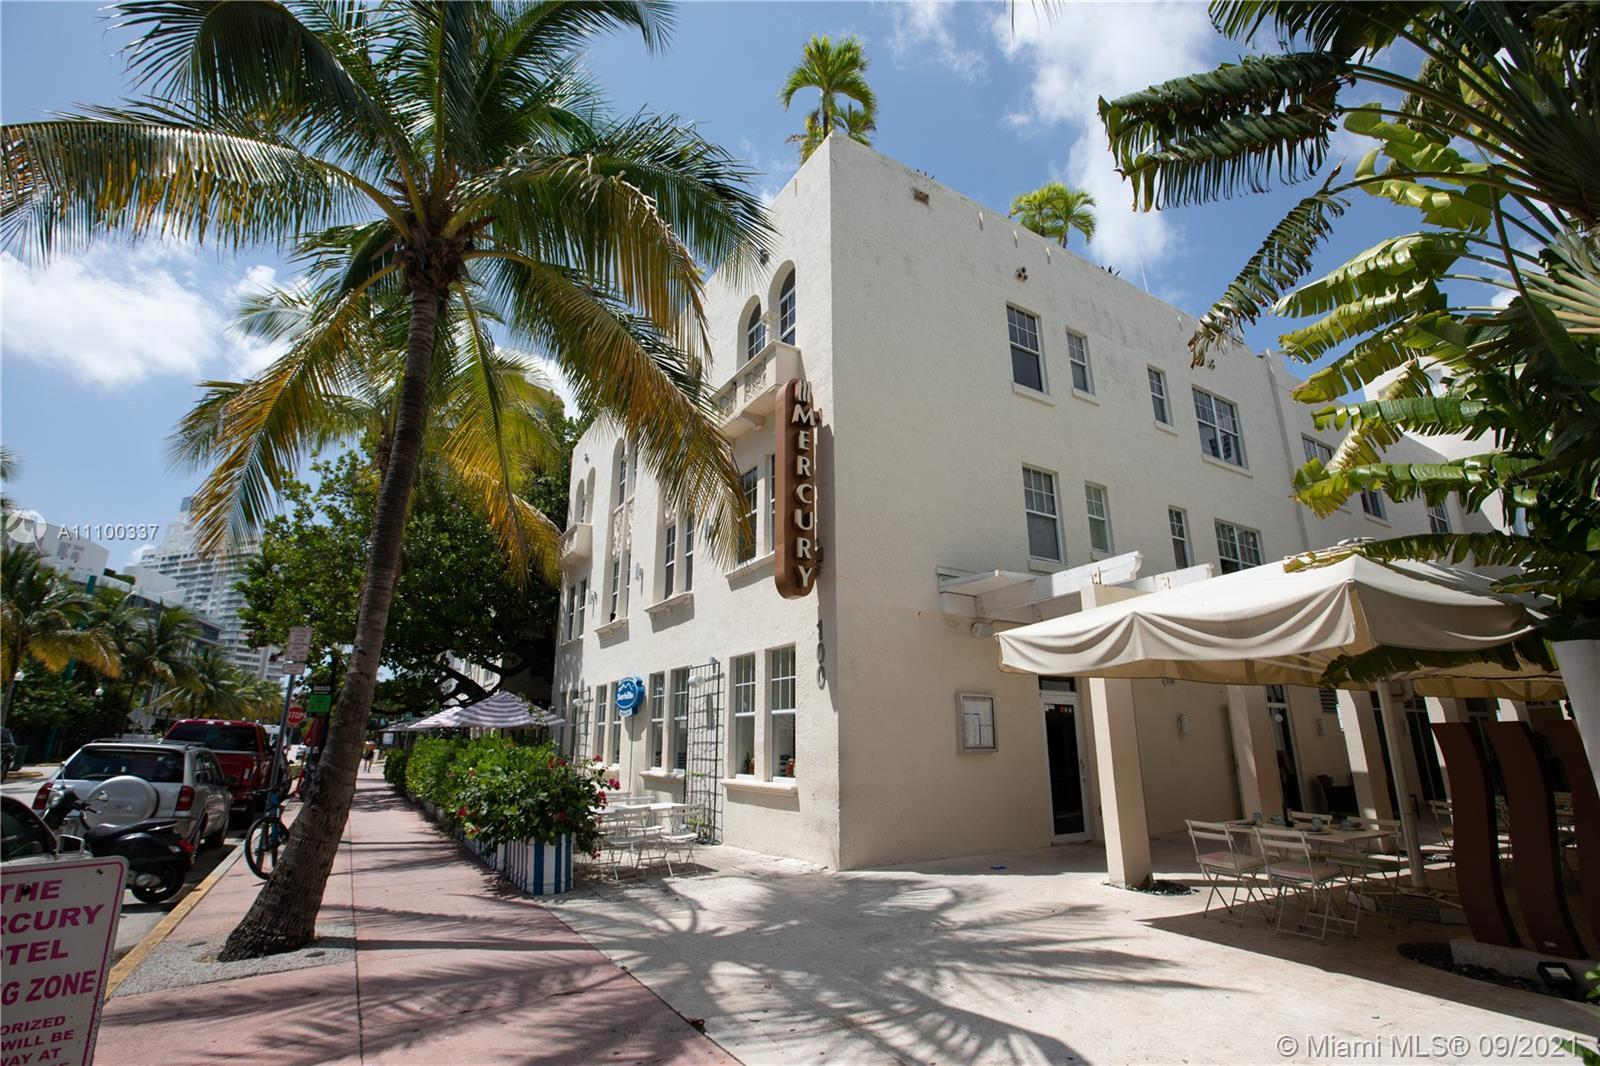 CONDO-HOTEL, ONE BEDROOM UNIT ON SOUTH BEACH, LOCATED ON THE LUXURIOUS NEIGHBORHOOD OF SOUTH OF FIFT